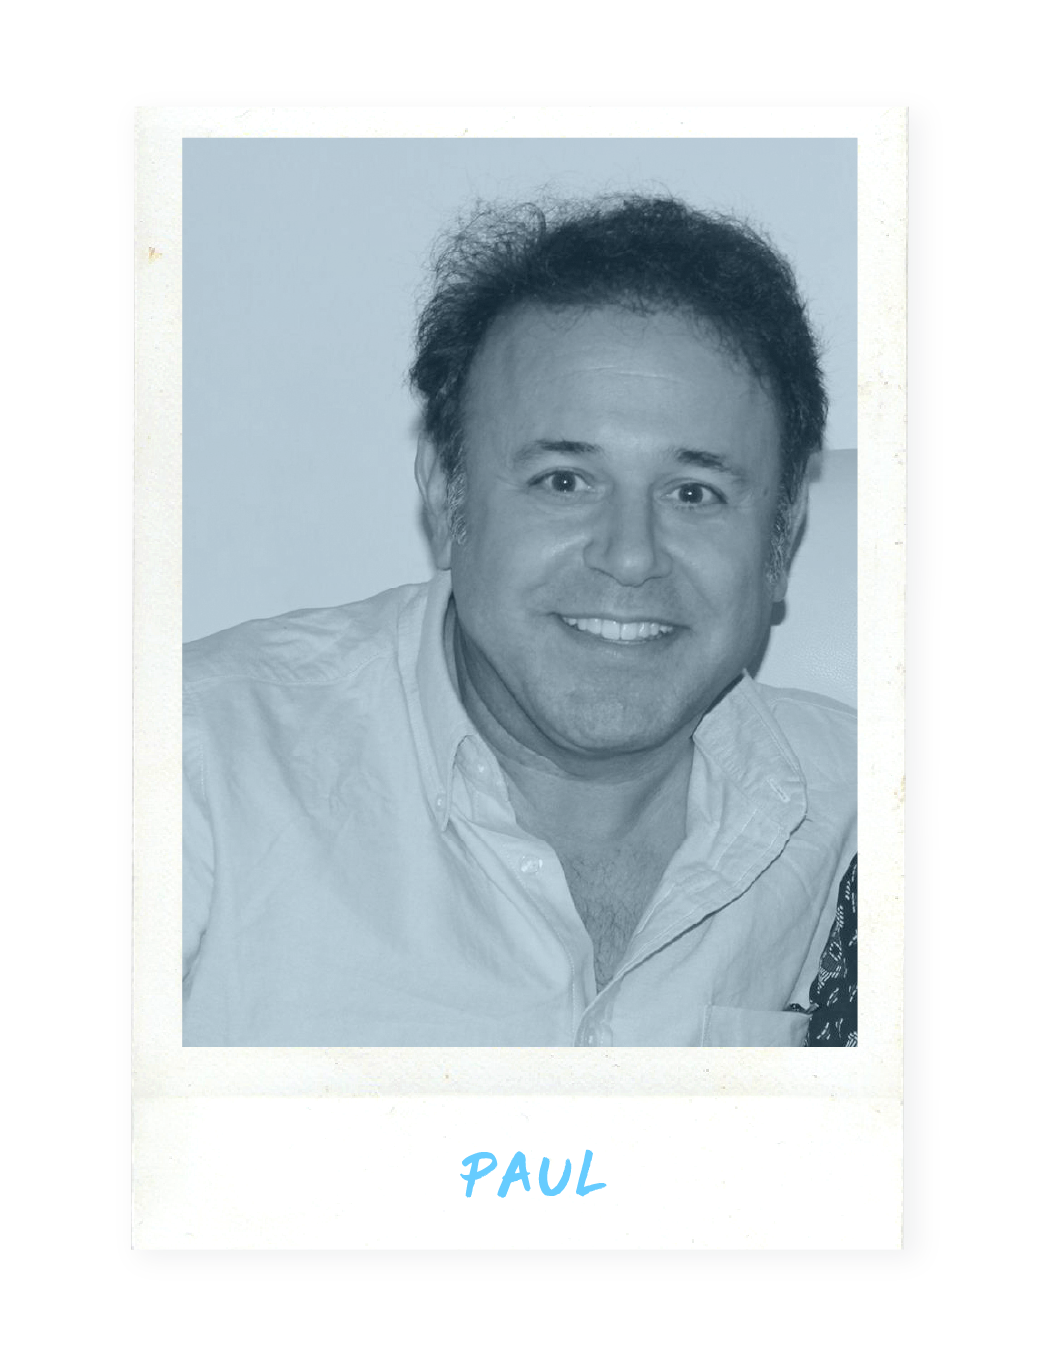 Paul Prostate Cancer Story